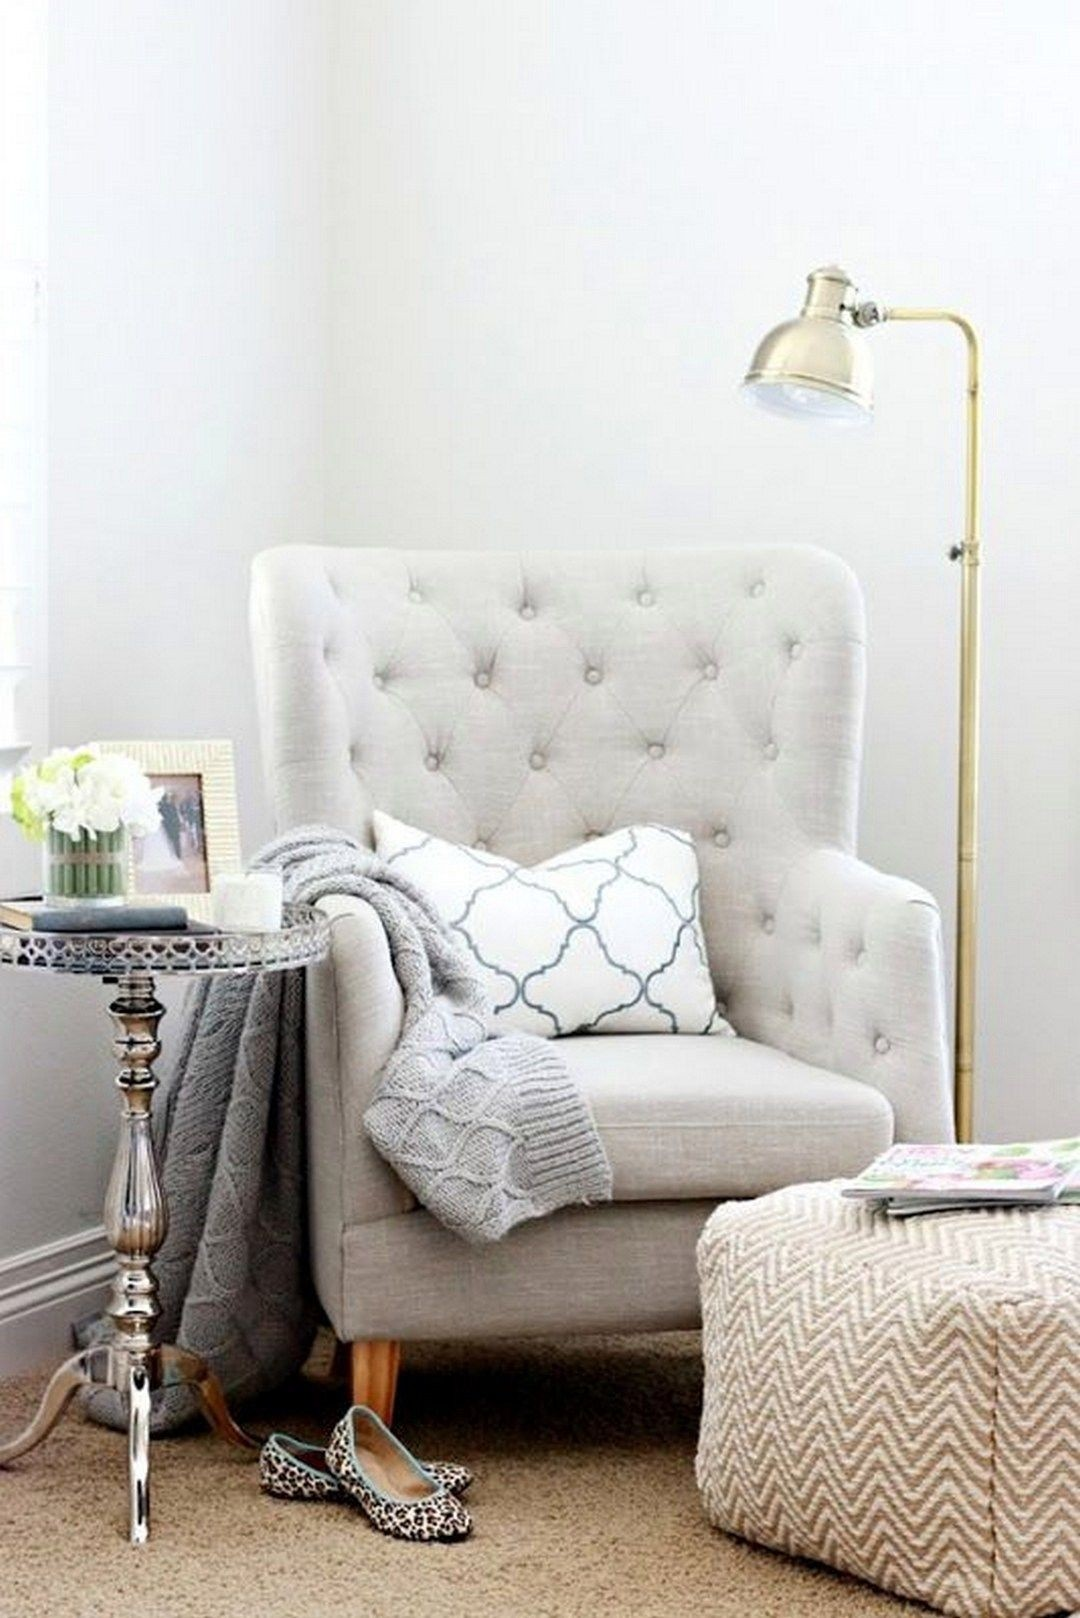 bedroom chair with skirt x rocker gaming small chairs ideas on foter 1